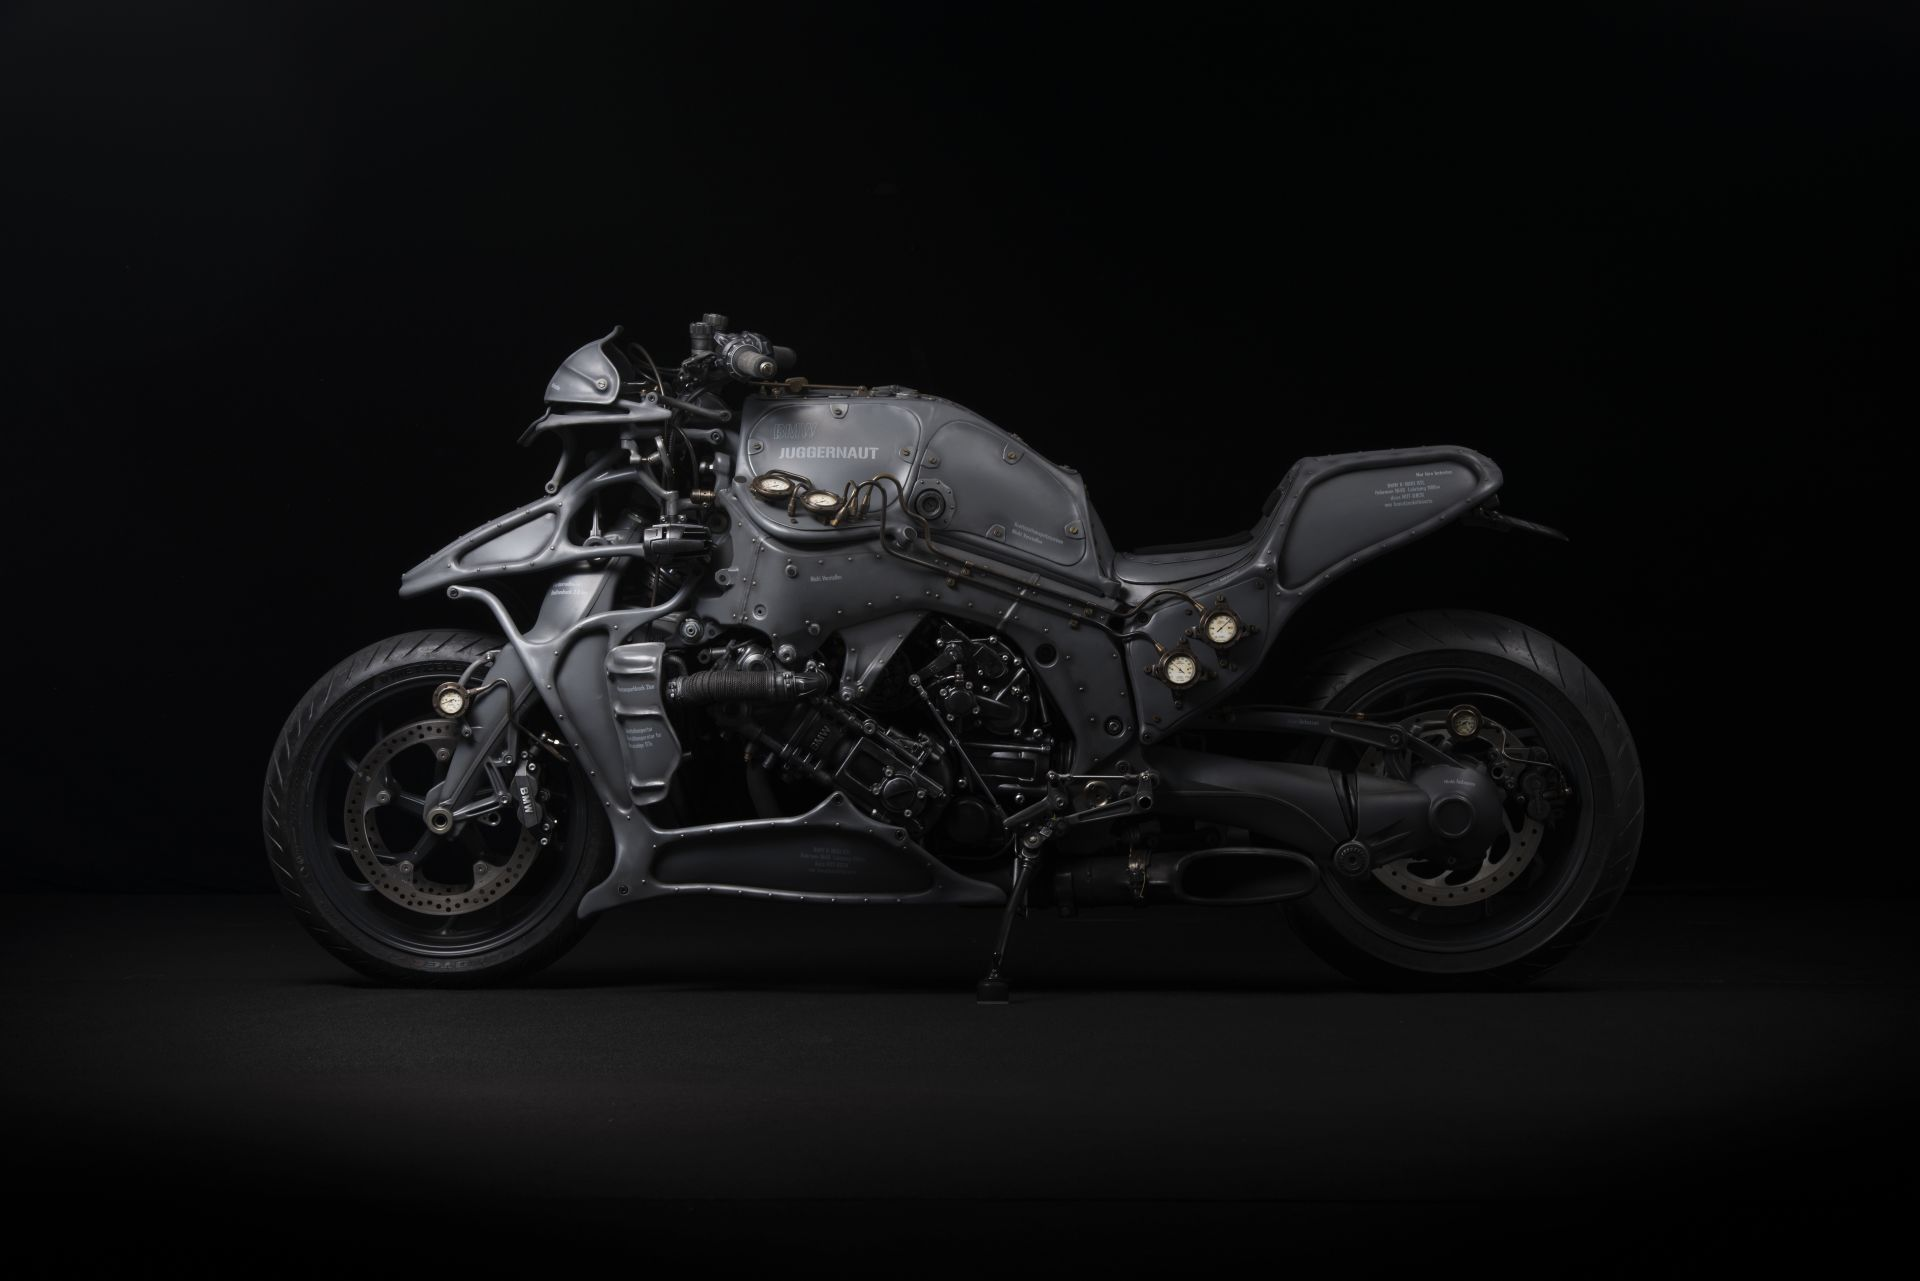 The Bmw K1600gtl Juggernaut Is A Steampunk Thing Of Beauty And Love Autoevolution